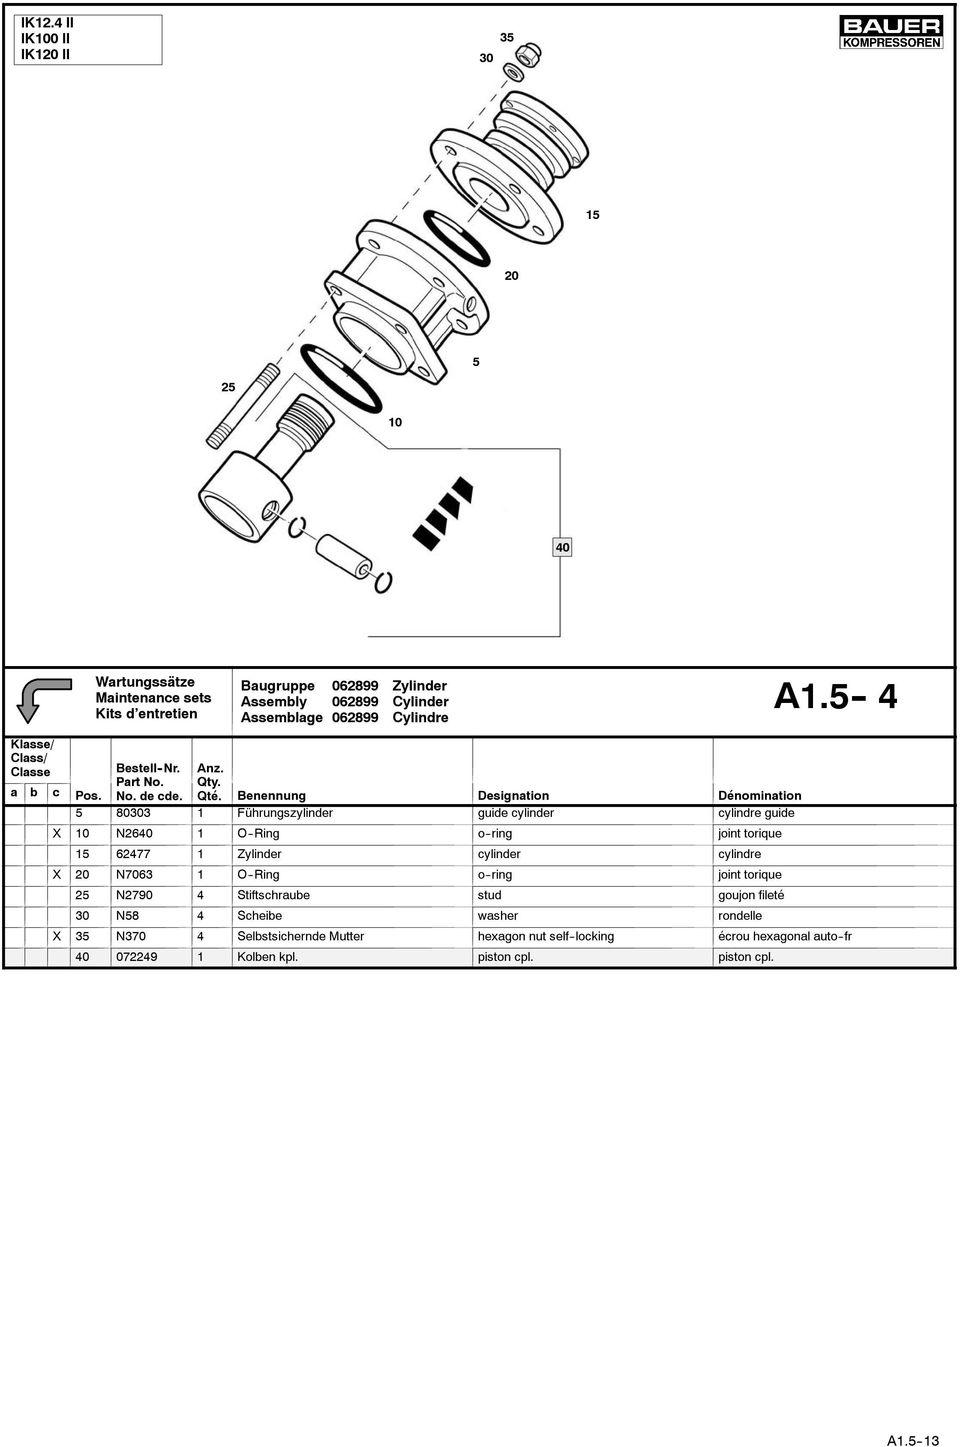 62477 1 Zylinder cylinder cylindre X 2 N763 1 O--Ring o--ring joint torique 25 N279 4 Stiftschraube stud goujon fileté N58 4